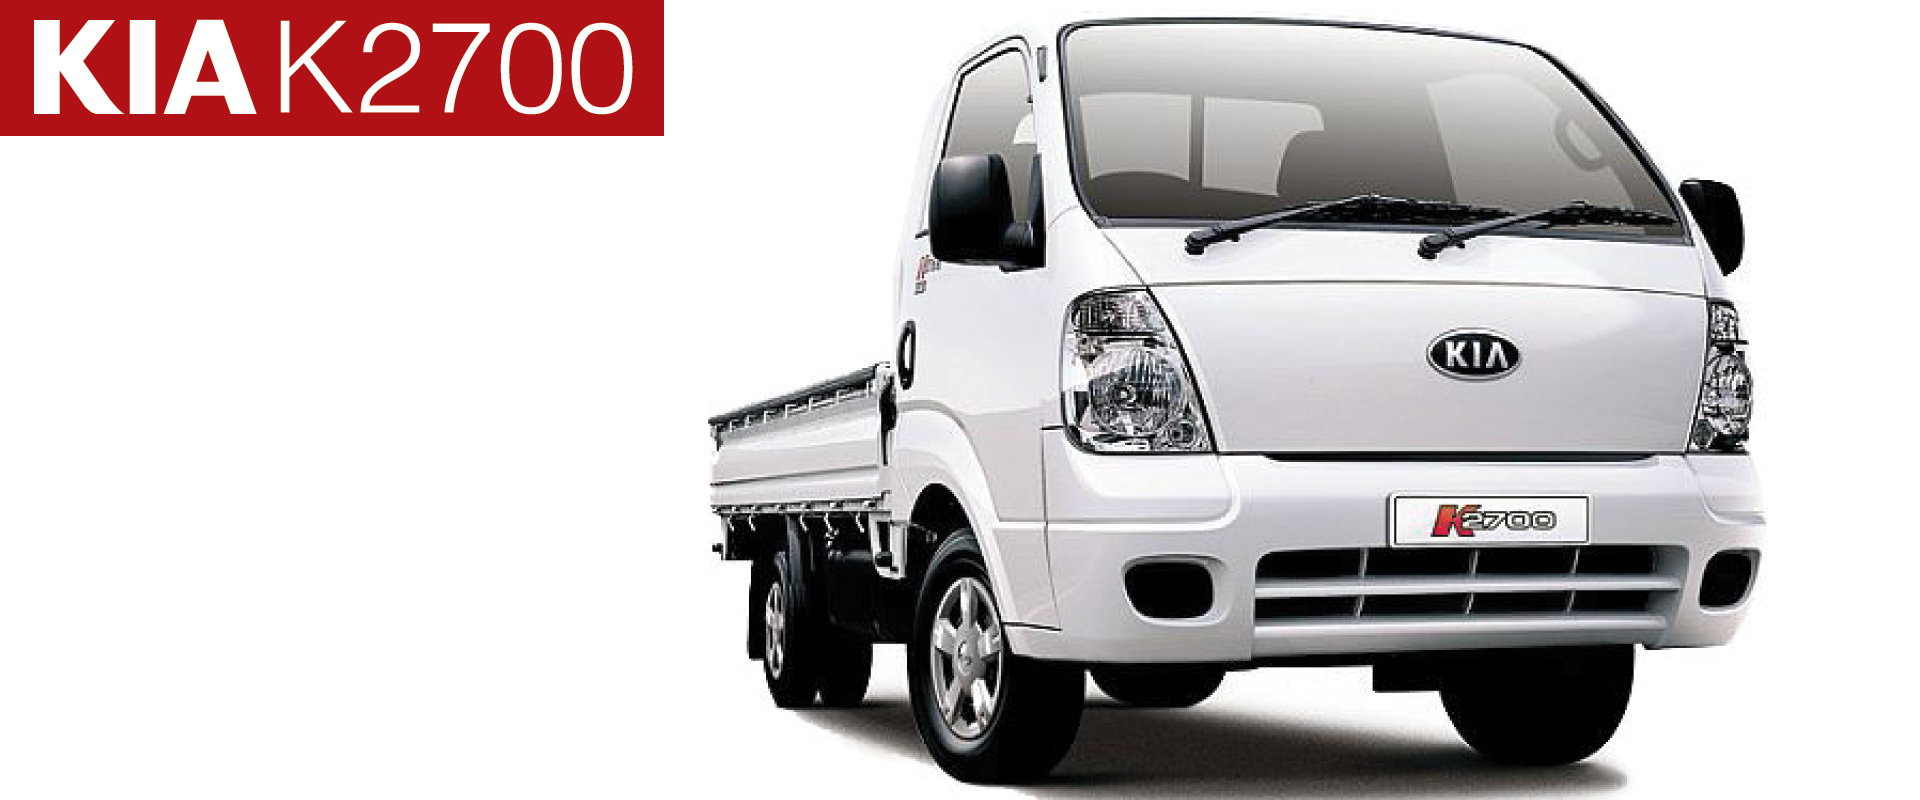 Kia K2700 Photos  Informations  Articles